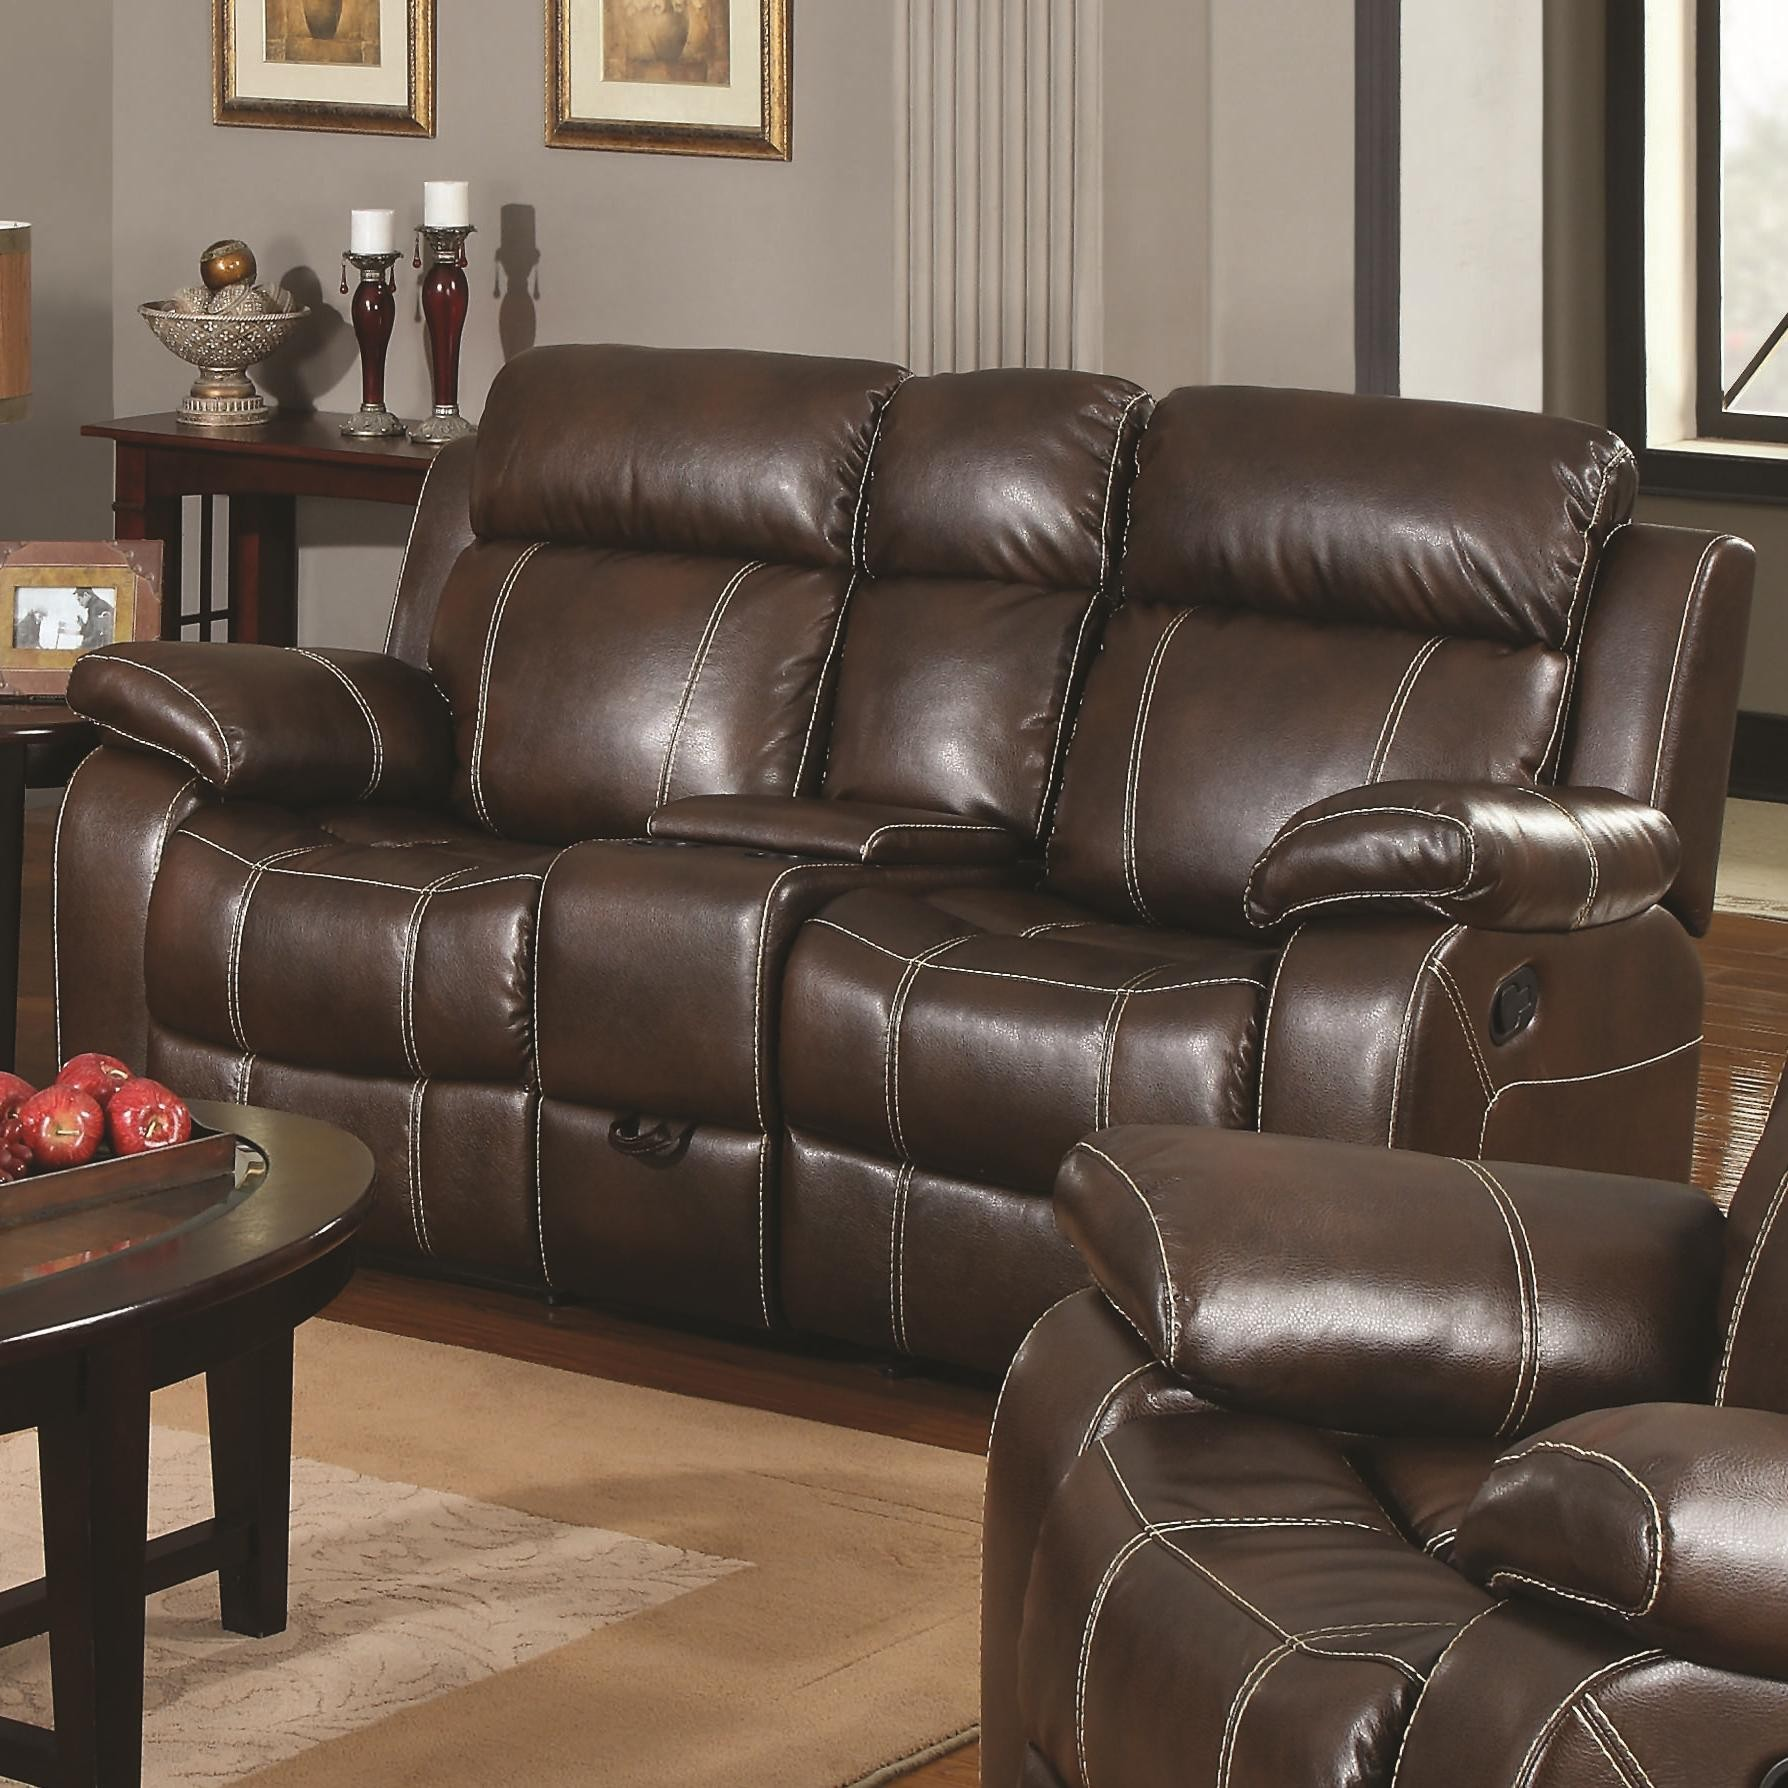 Myleene collection 603021 brown leather reclining sofa loveseat set Loveseats with console